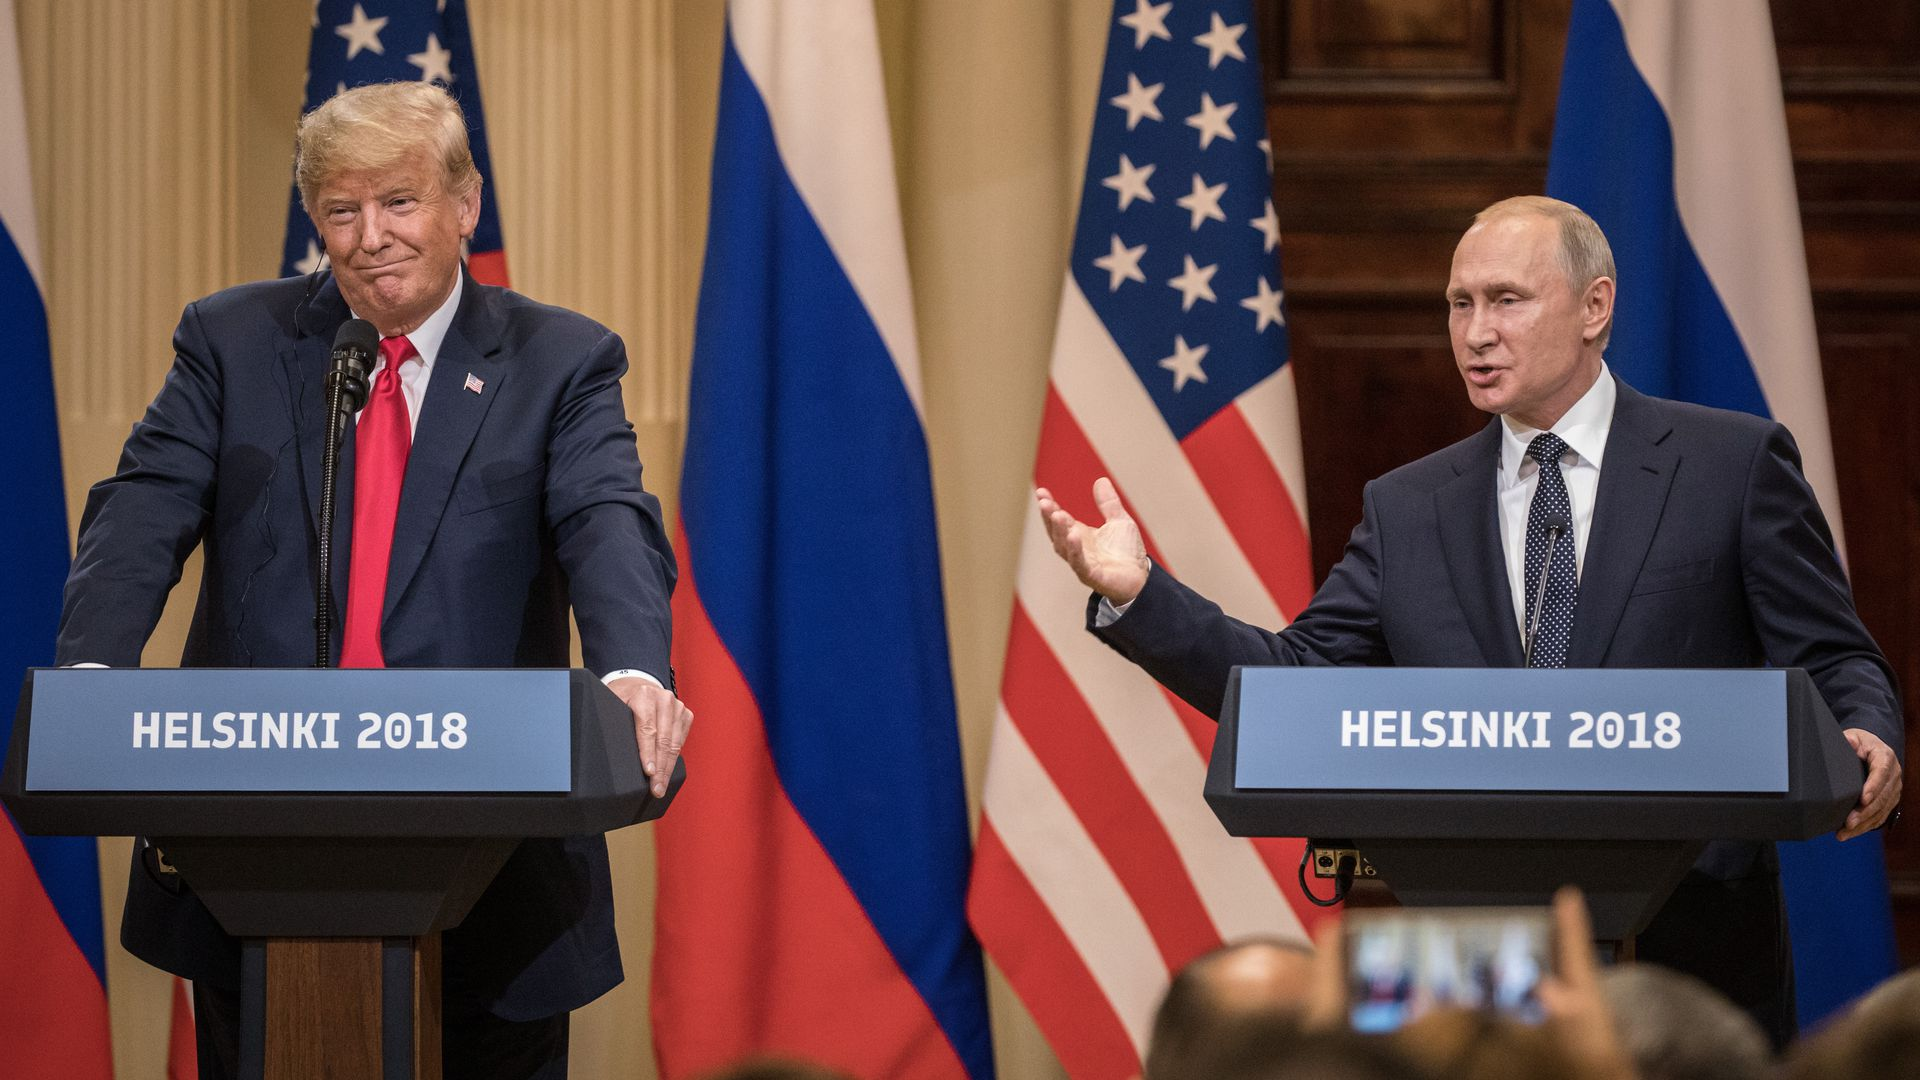 Donald trump and vladimir putin at helsinki summit